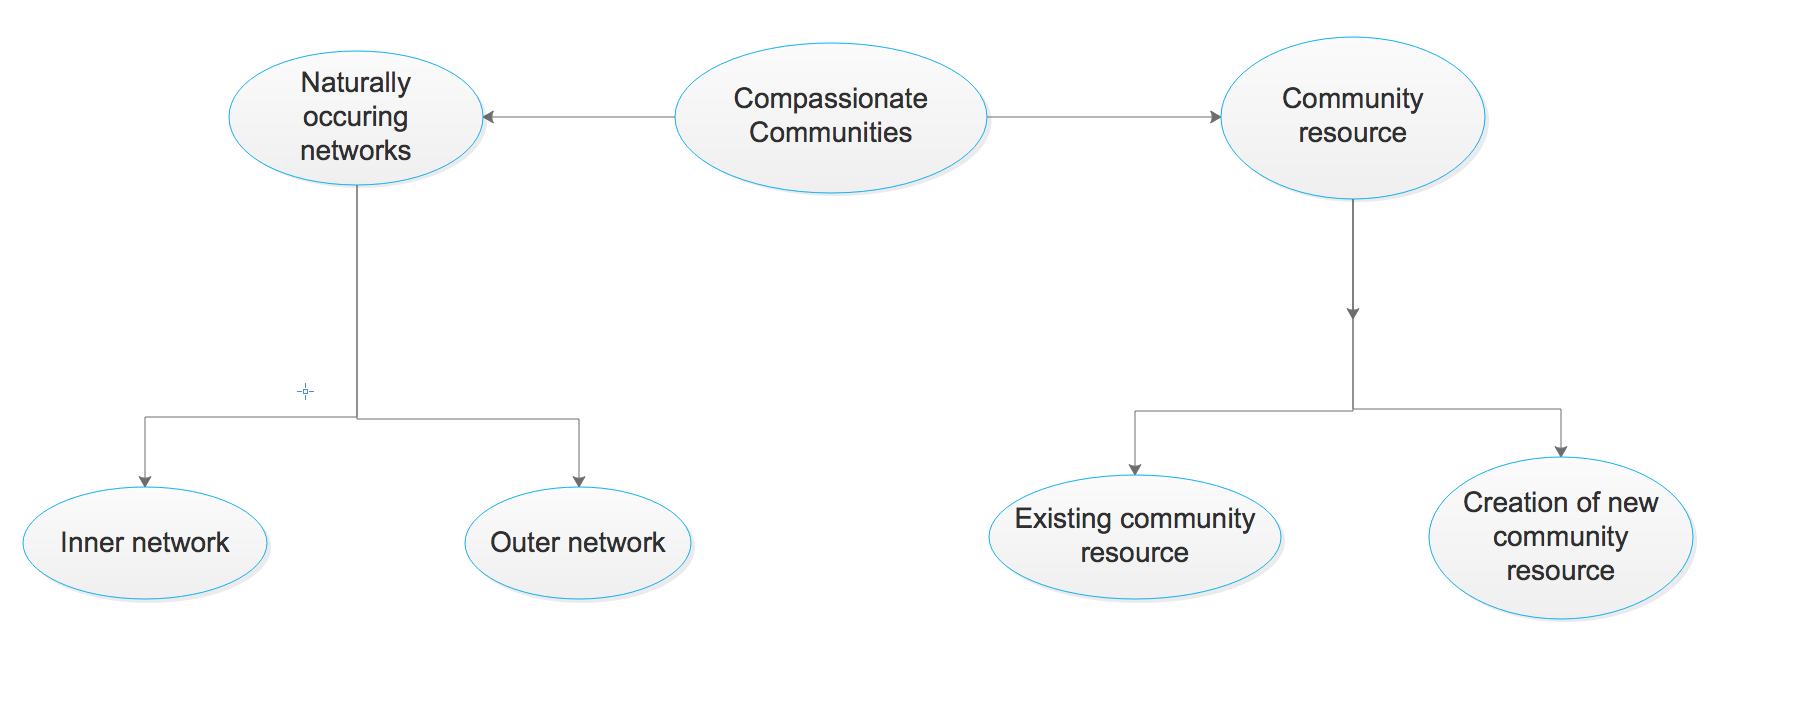 Different types of community resources